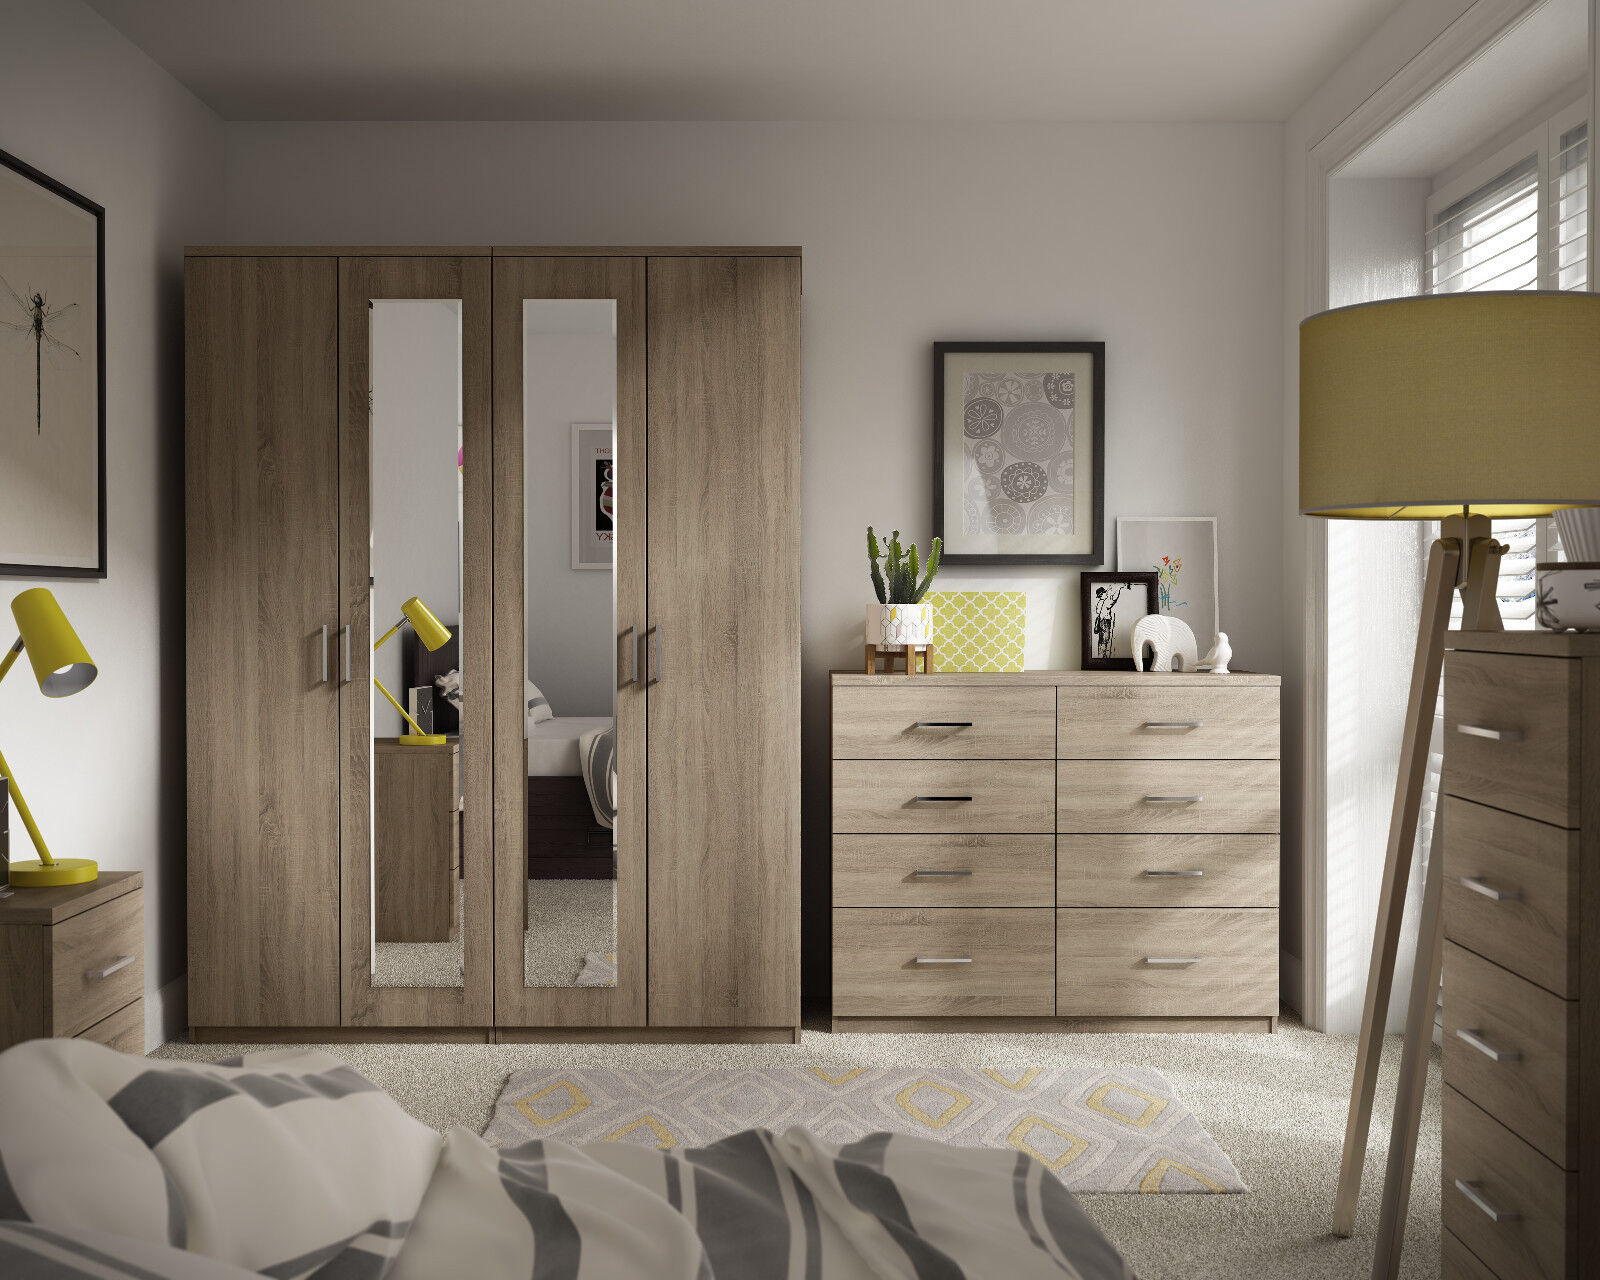 Terrific Details About Medina Bardolino Oak Wardrobe Drawer Set Fully Ready Assembled Bedroom Furniture Download Free Architecture Designs Rallybritishbridgeorg